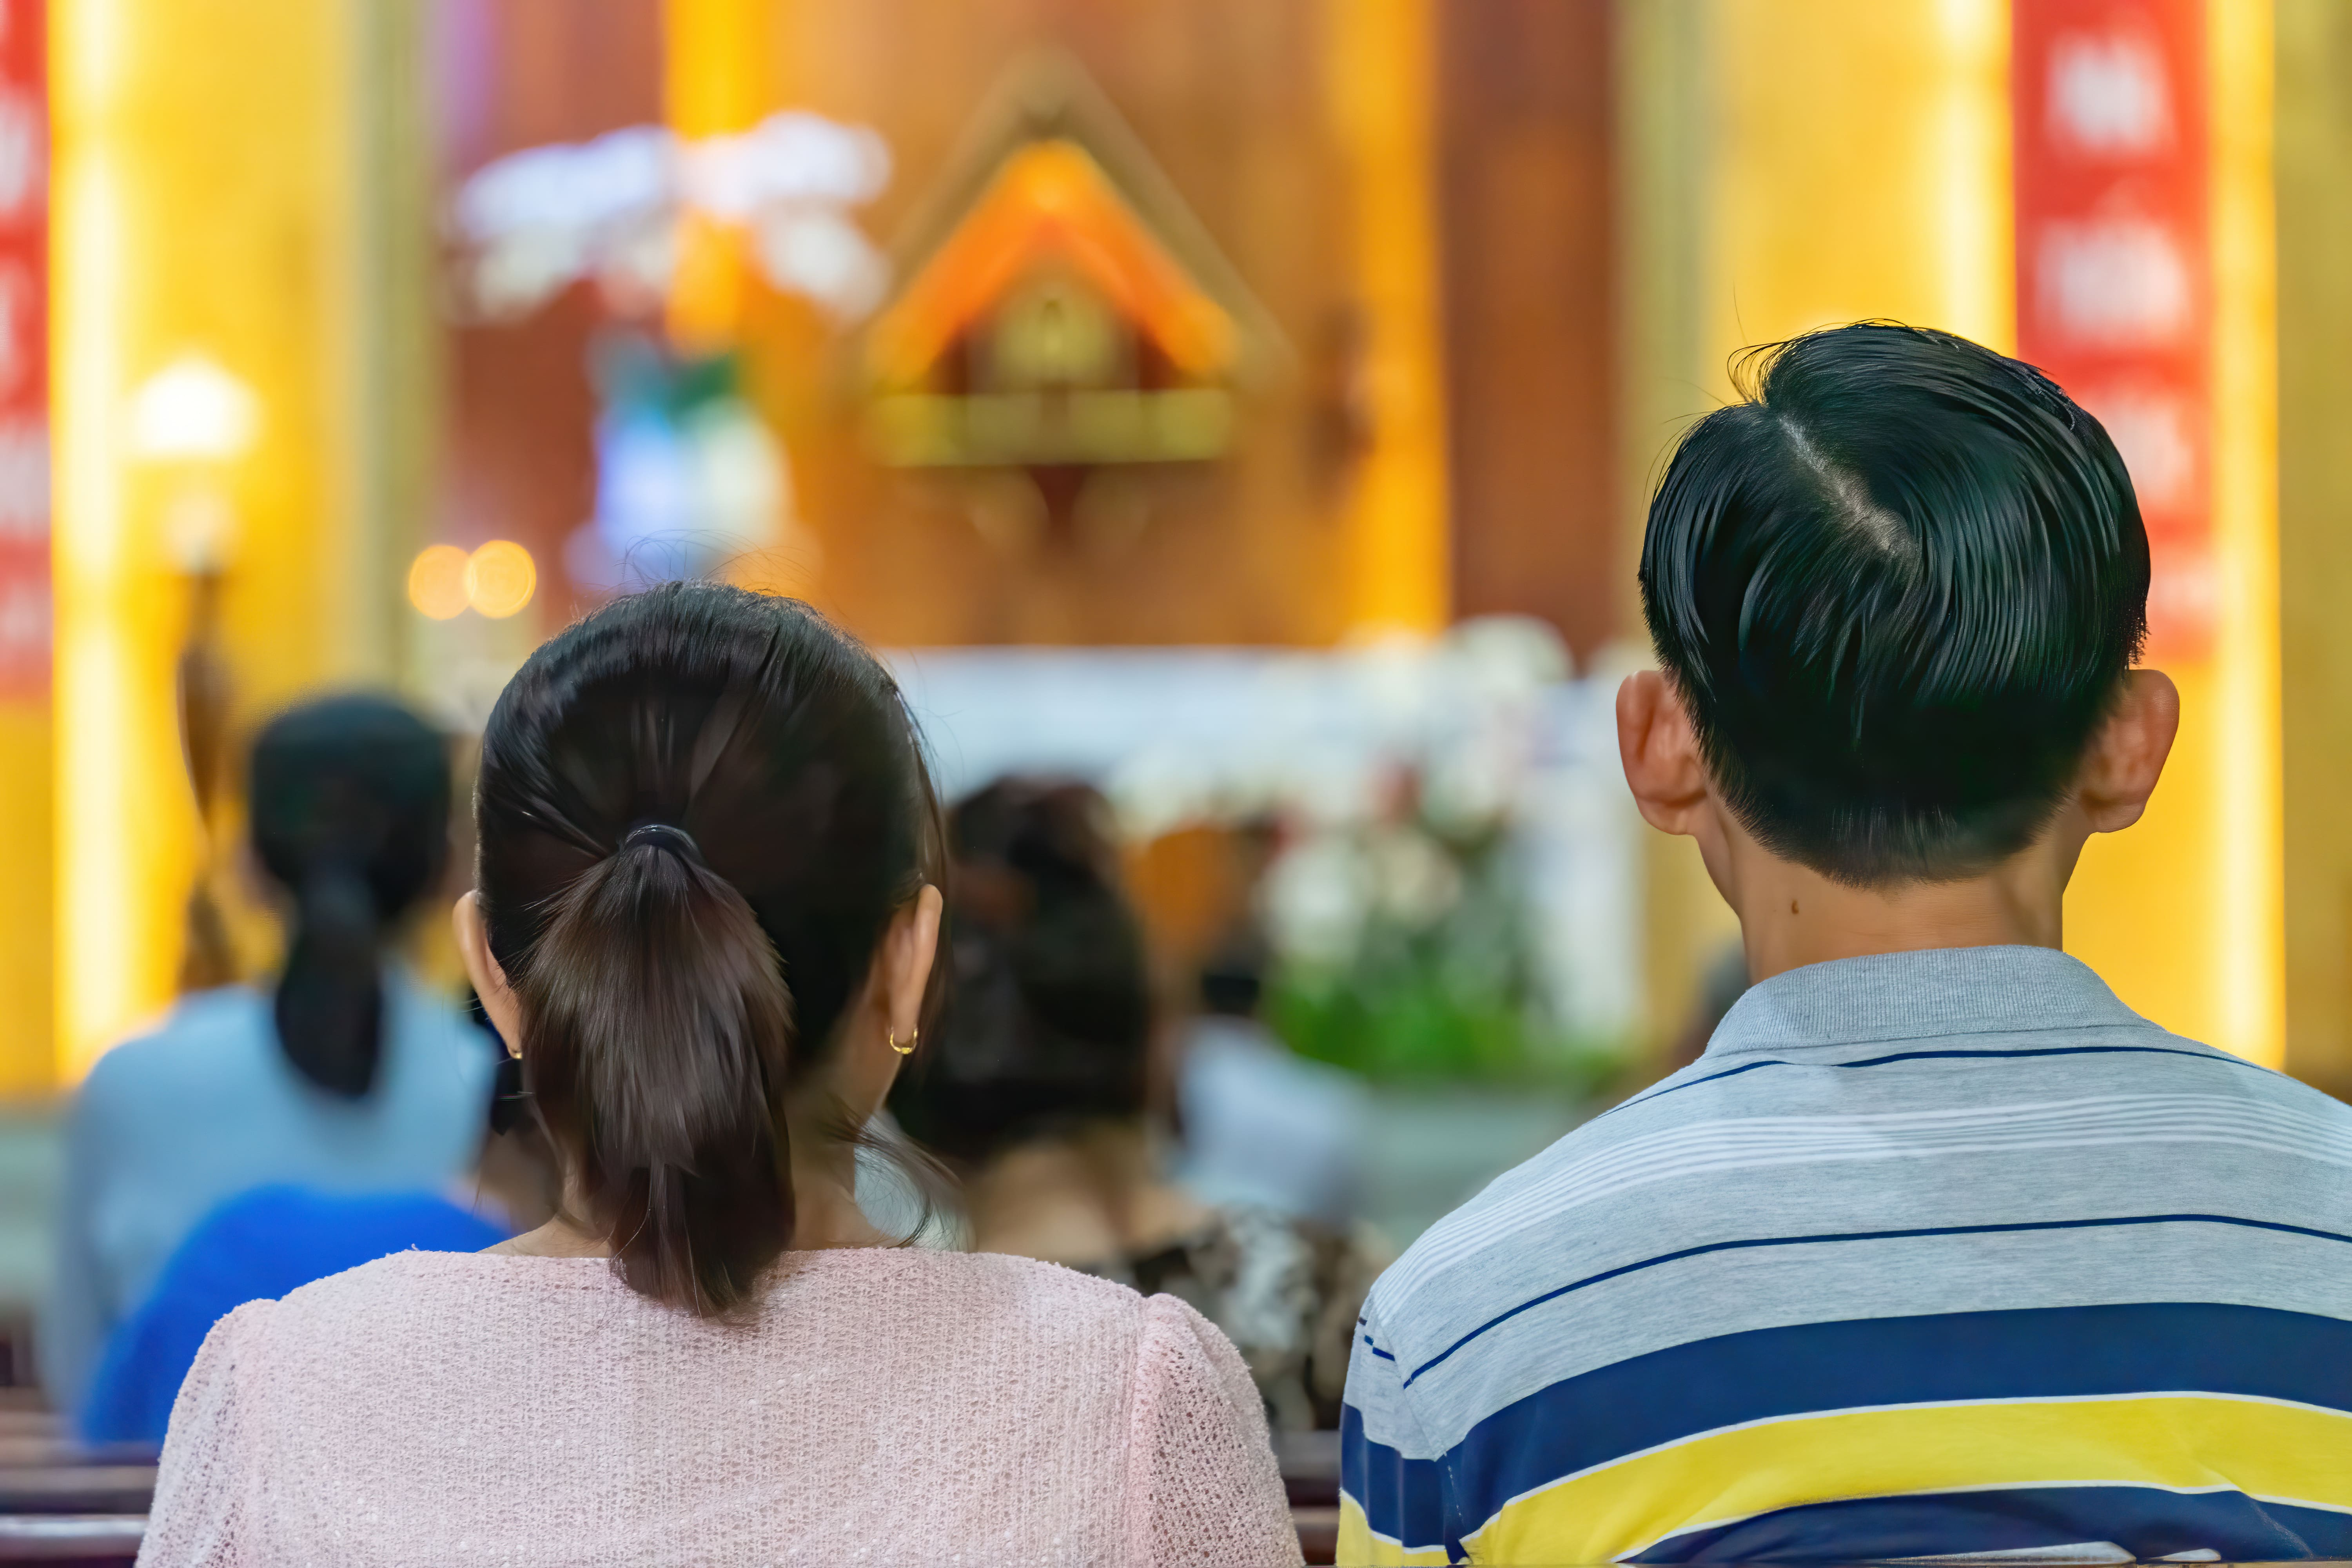 What Does It Mean To Have an 'Interactive' Church Service?